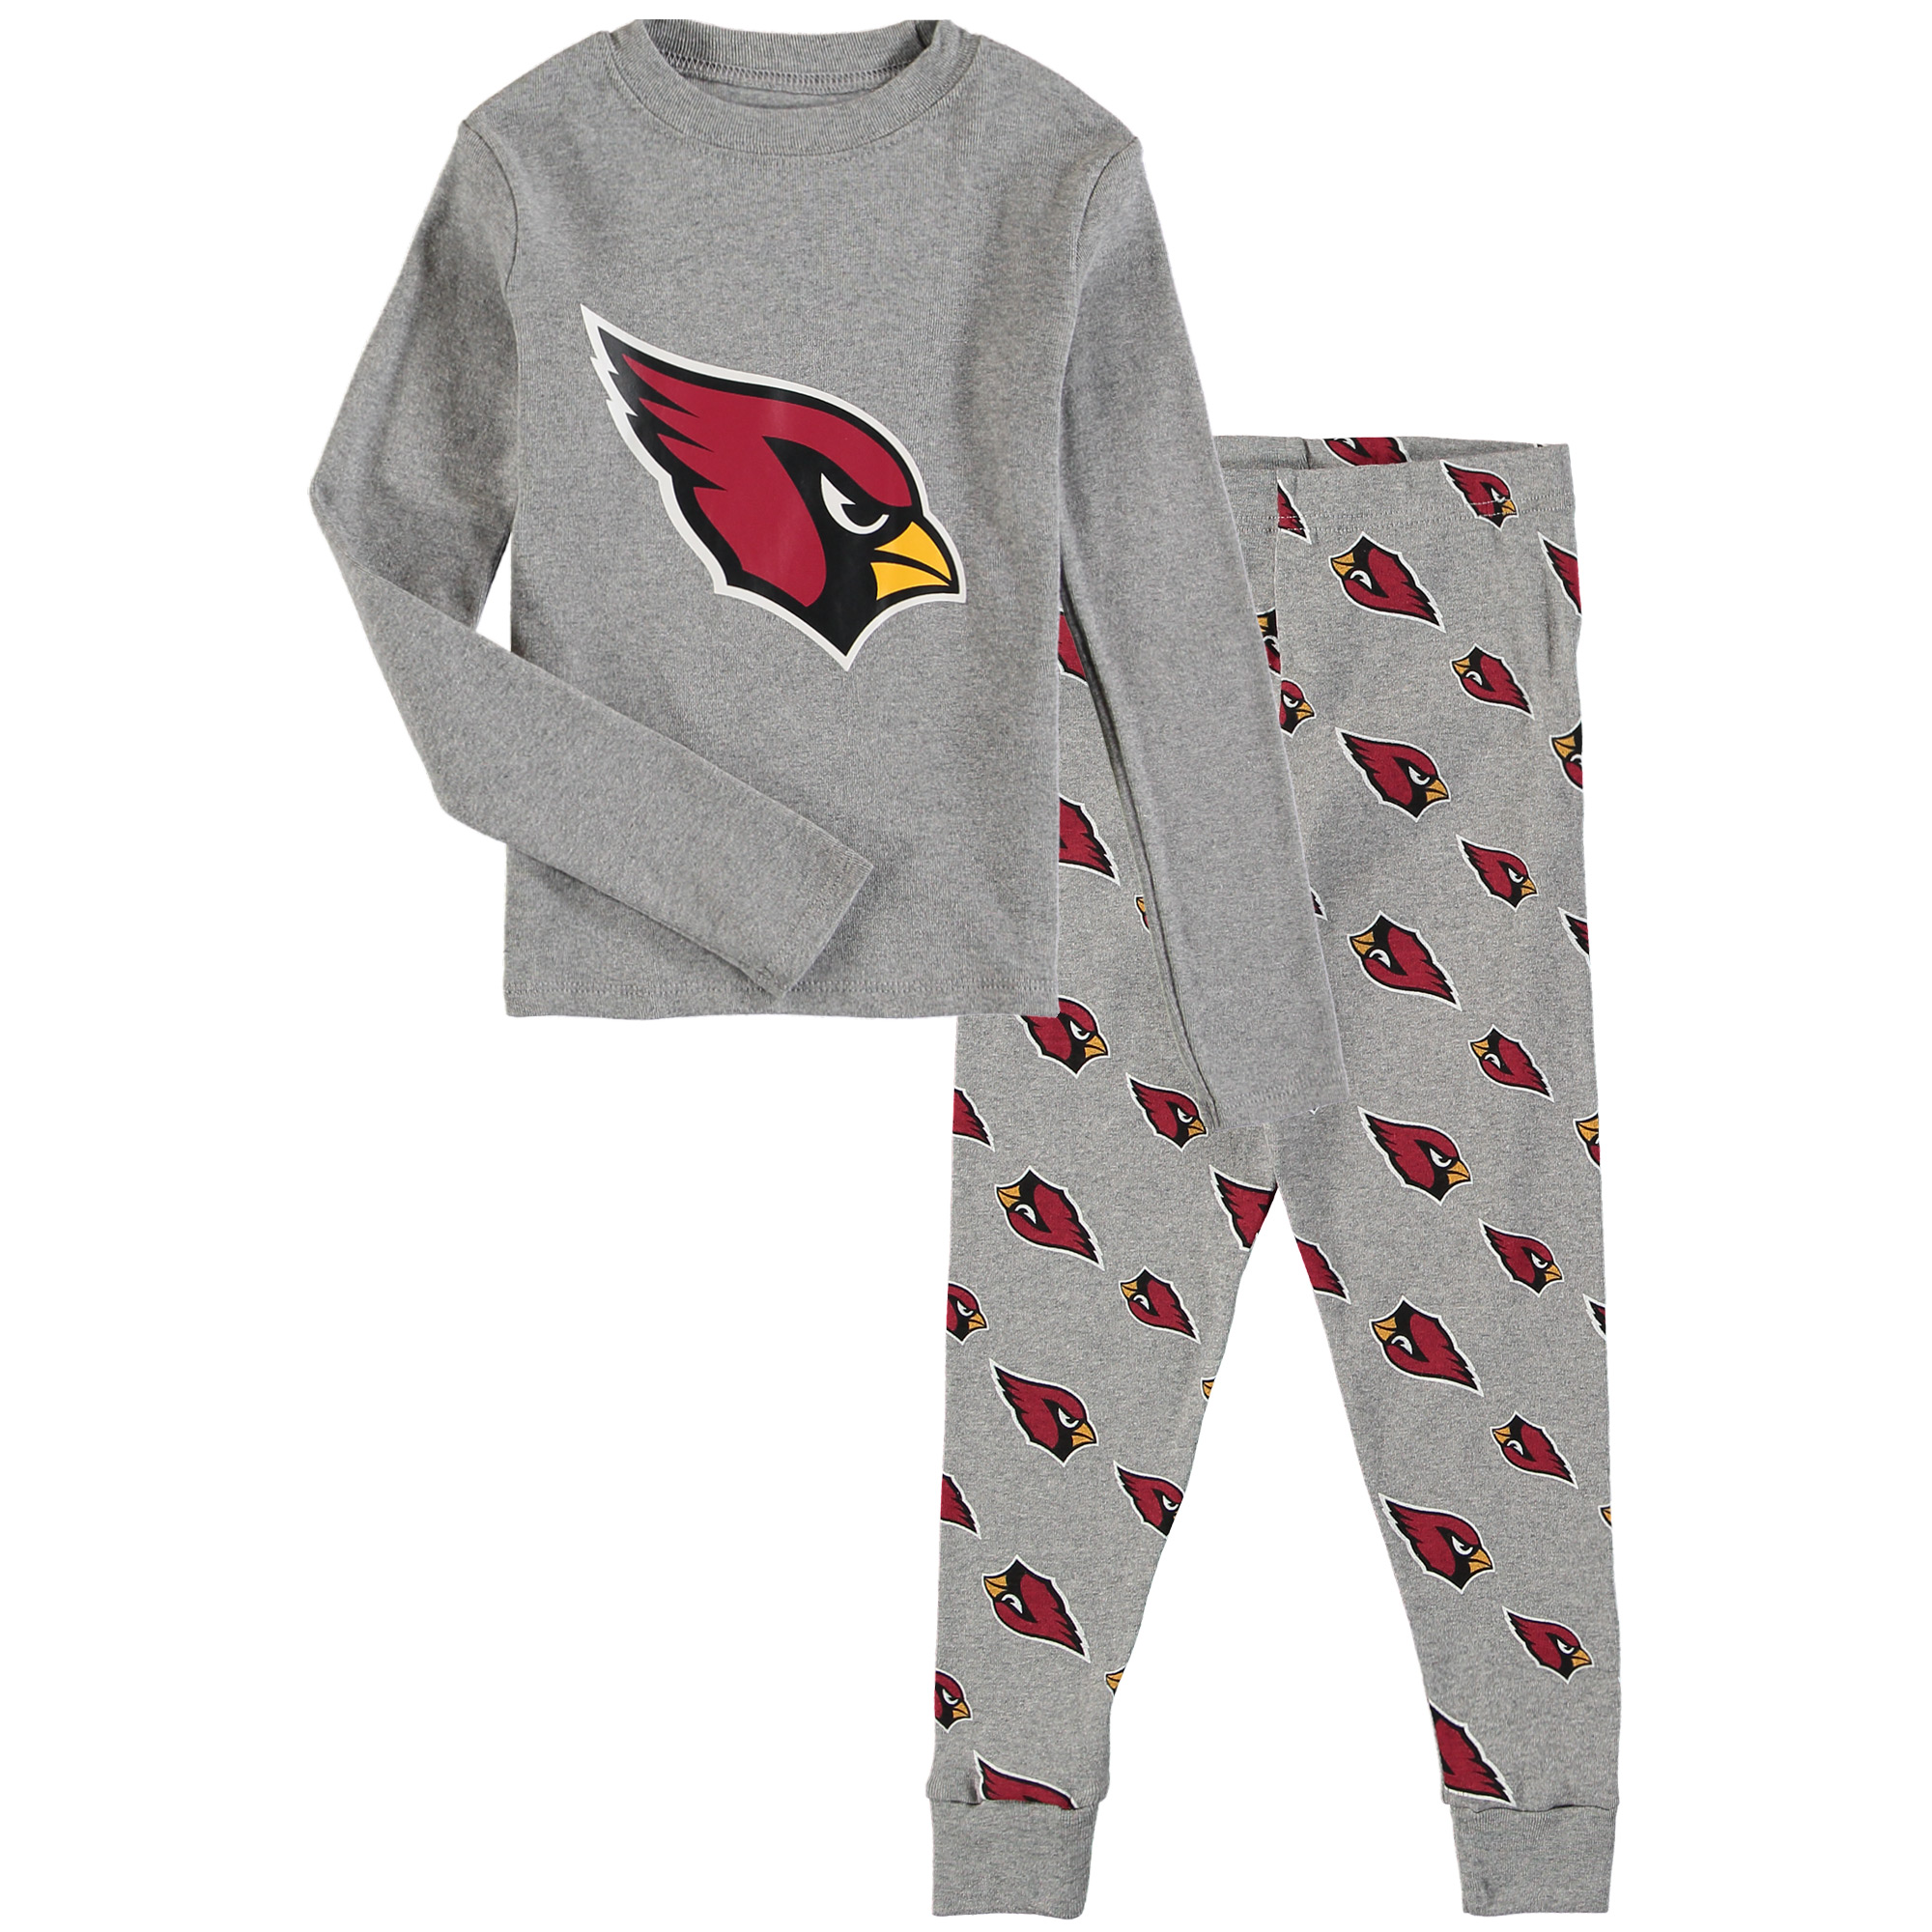 Arizona Cardinals Youth Long Sleeve T-Shirt & Pants Sleep Set - Heathered Gray